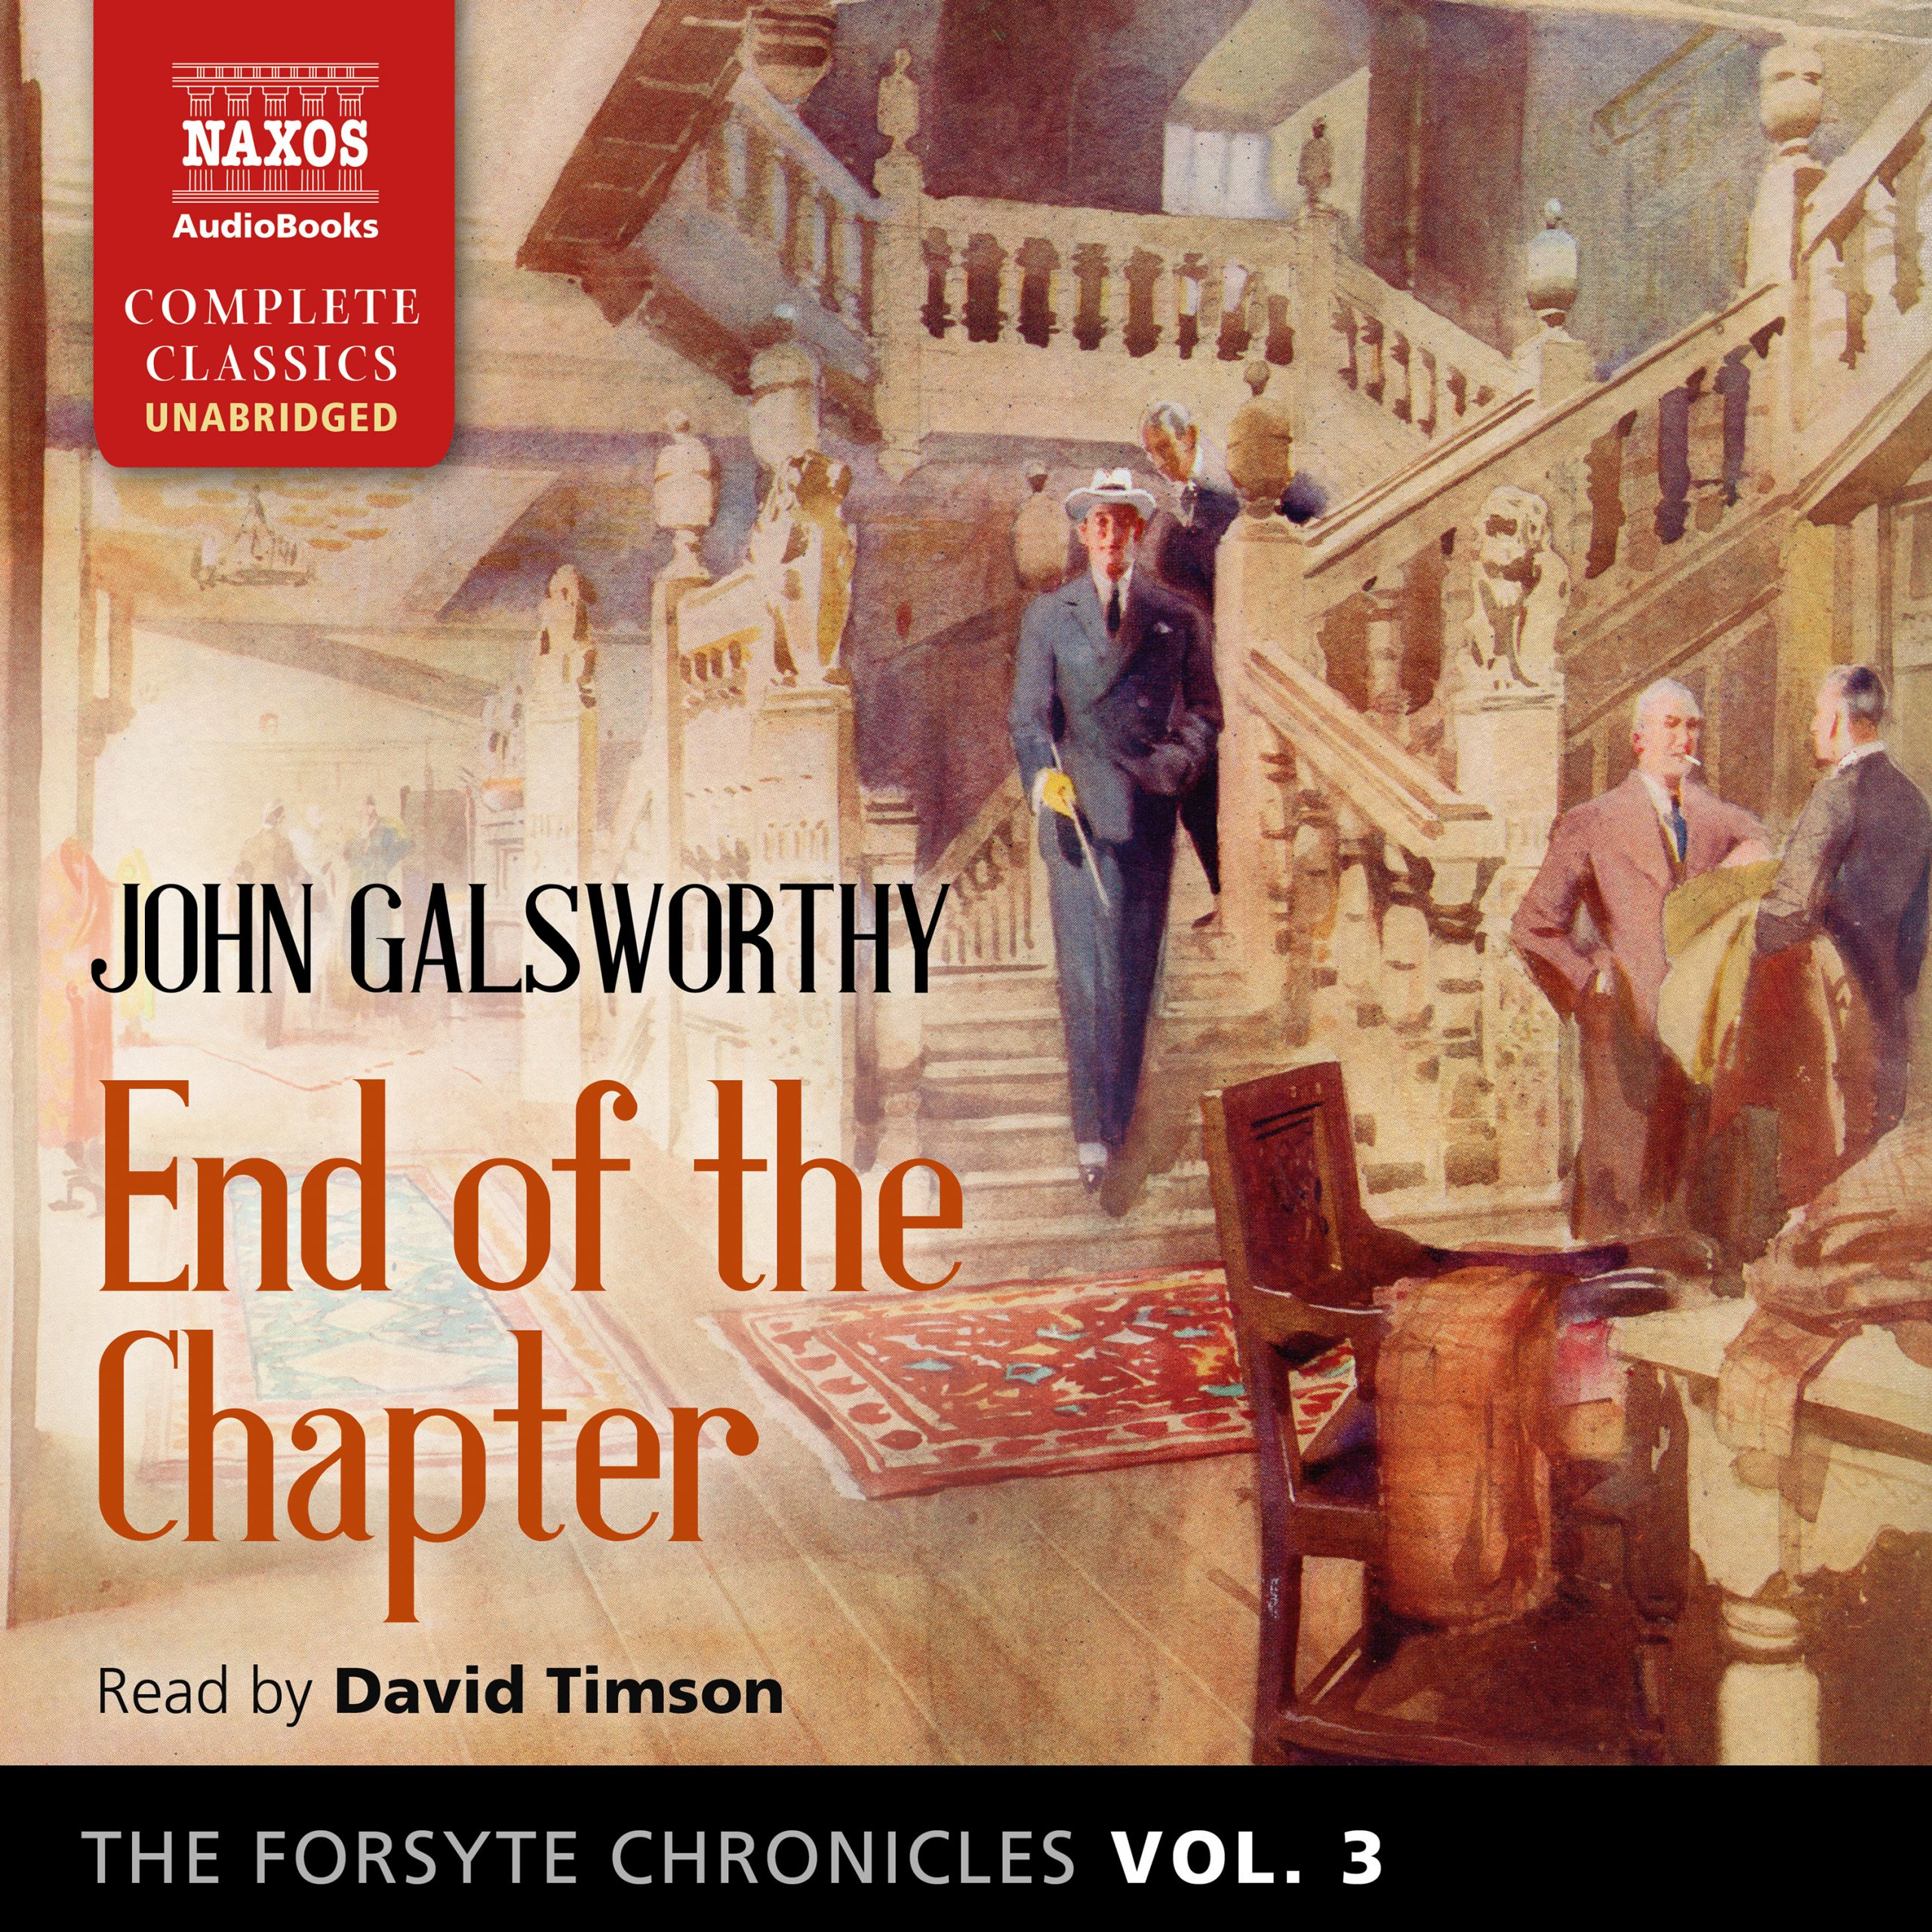 The Forsyte Chronicles, Vol. 3: End of the Chapter (unabridged)